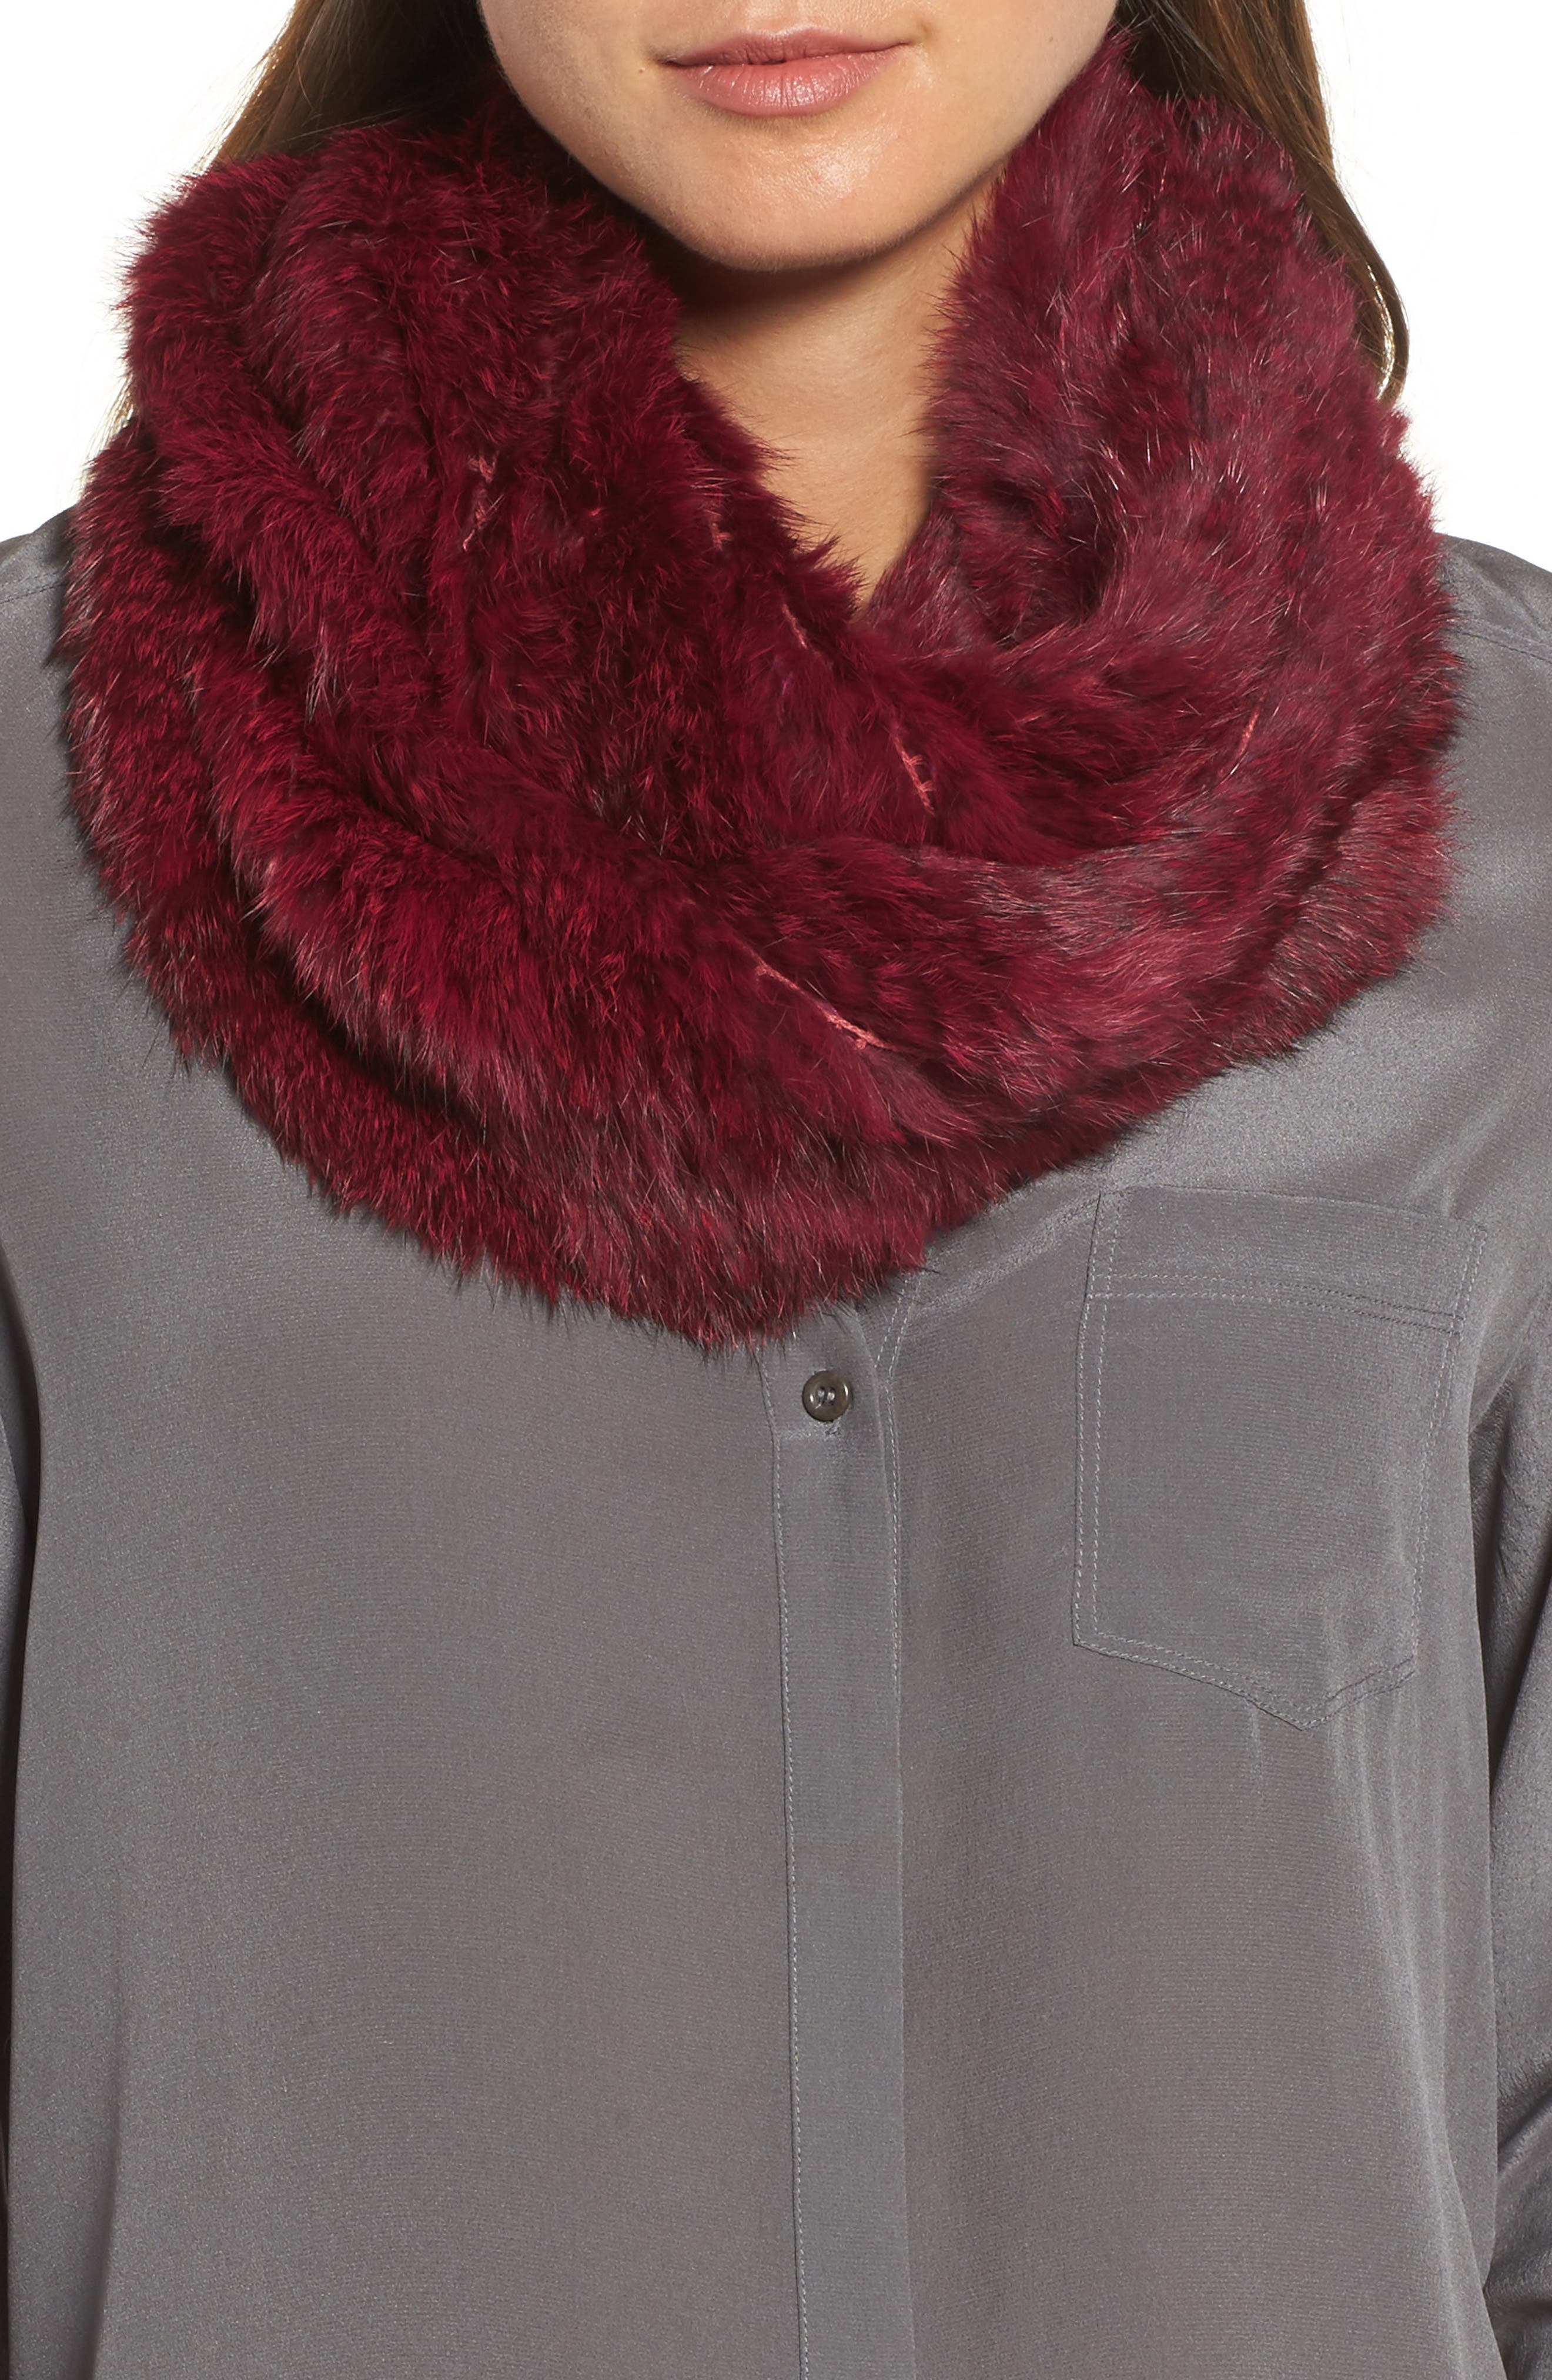 Alternate Image 1 Selected - Jocelyn Overdyed Genuine Rabbit Fur Infinity Scarf